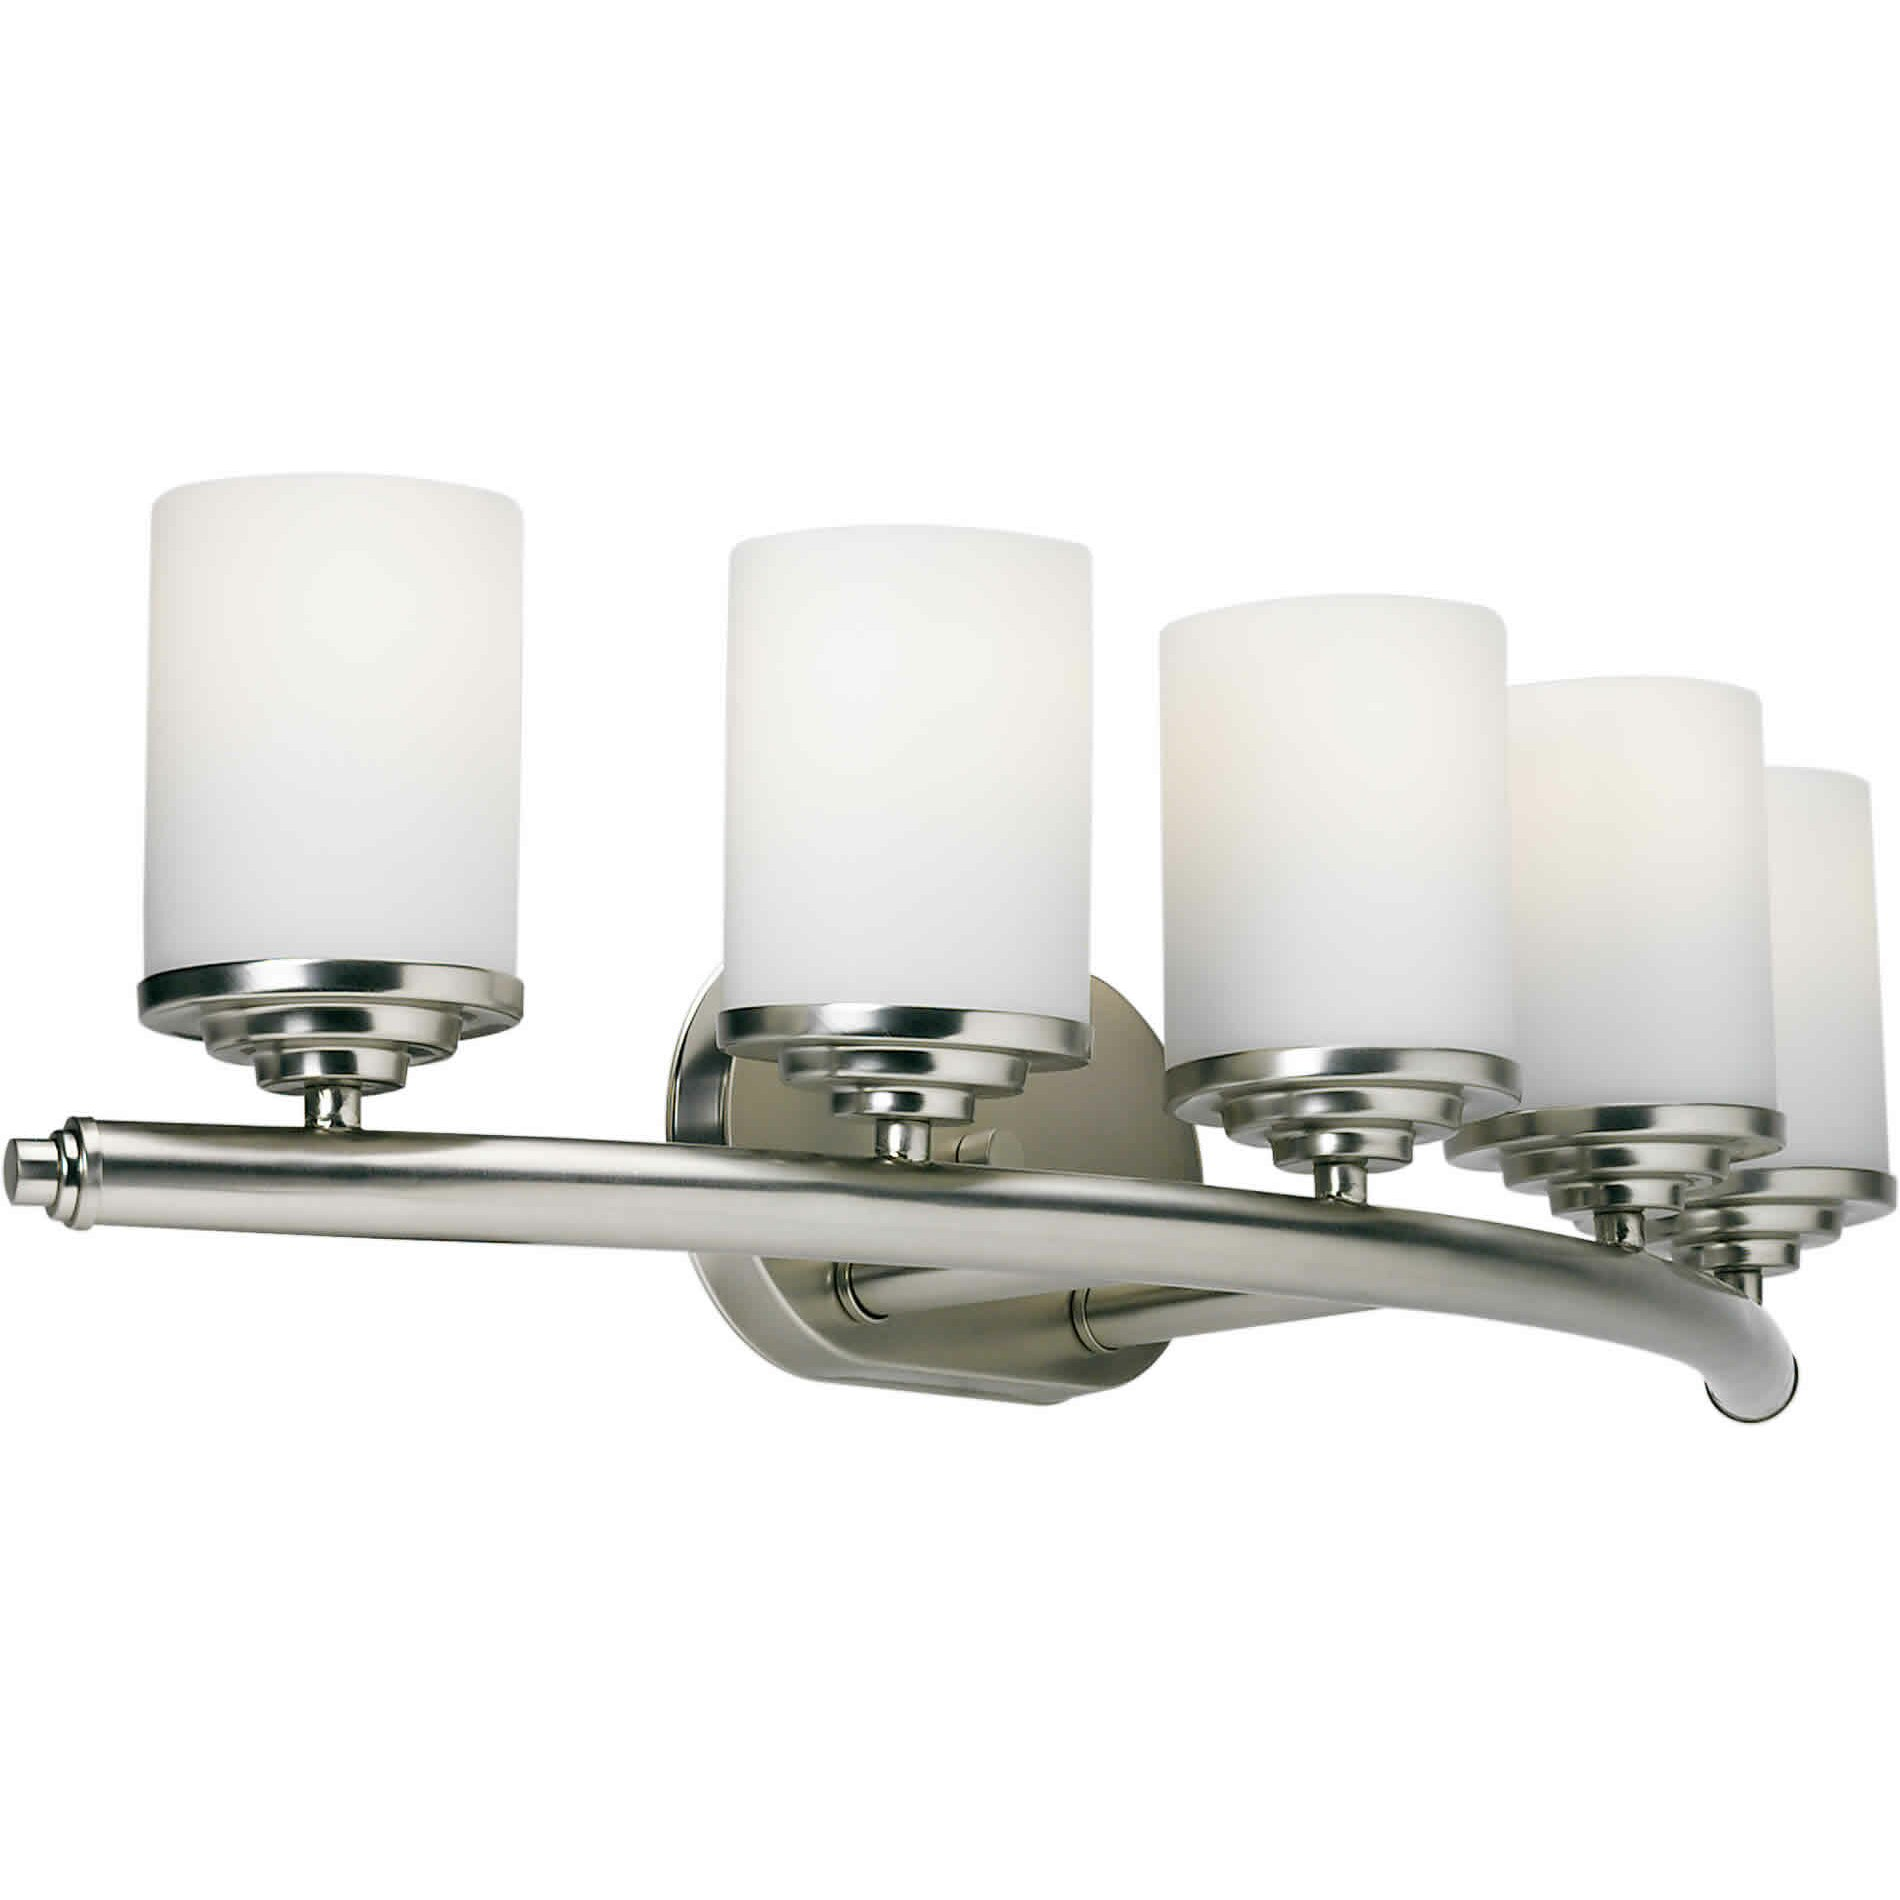 5 Light Bathroom Vanity Light: Forte Lighting 5 Light Vanity Light & Reviews